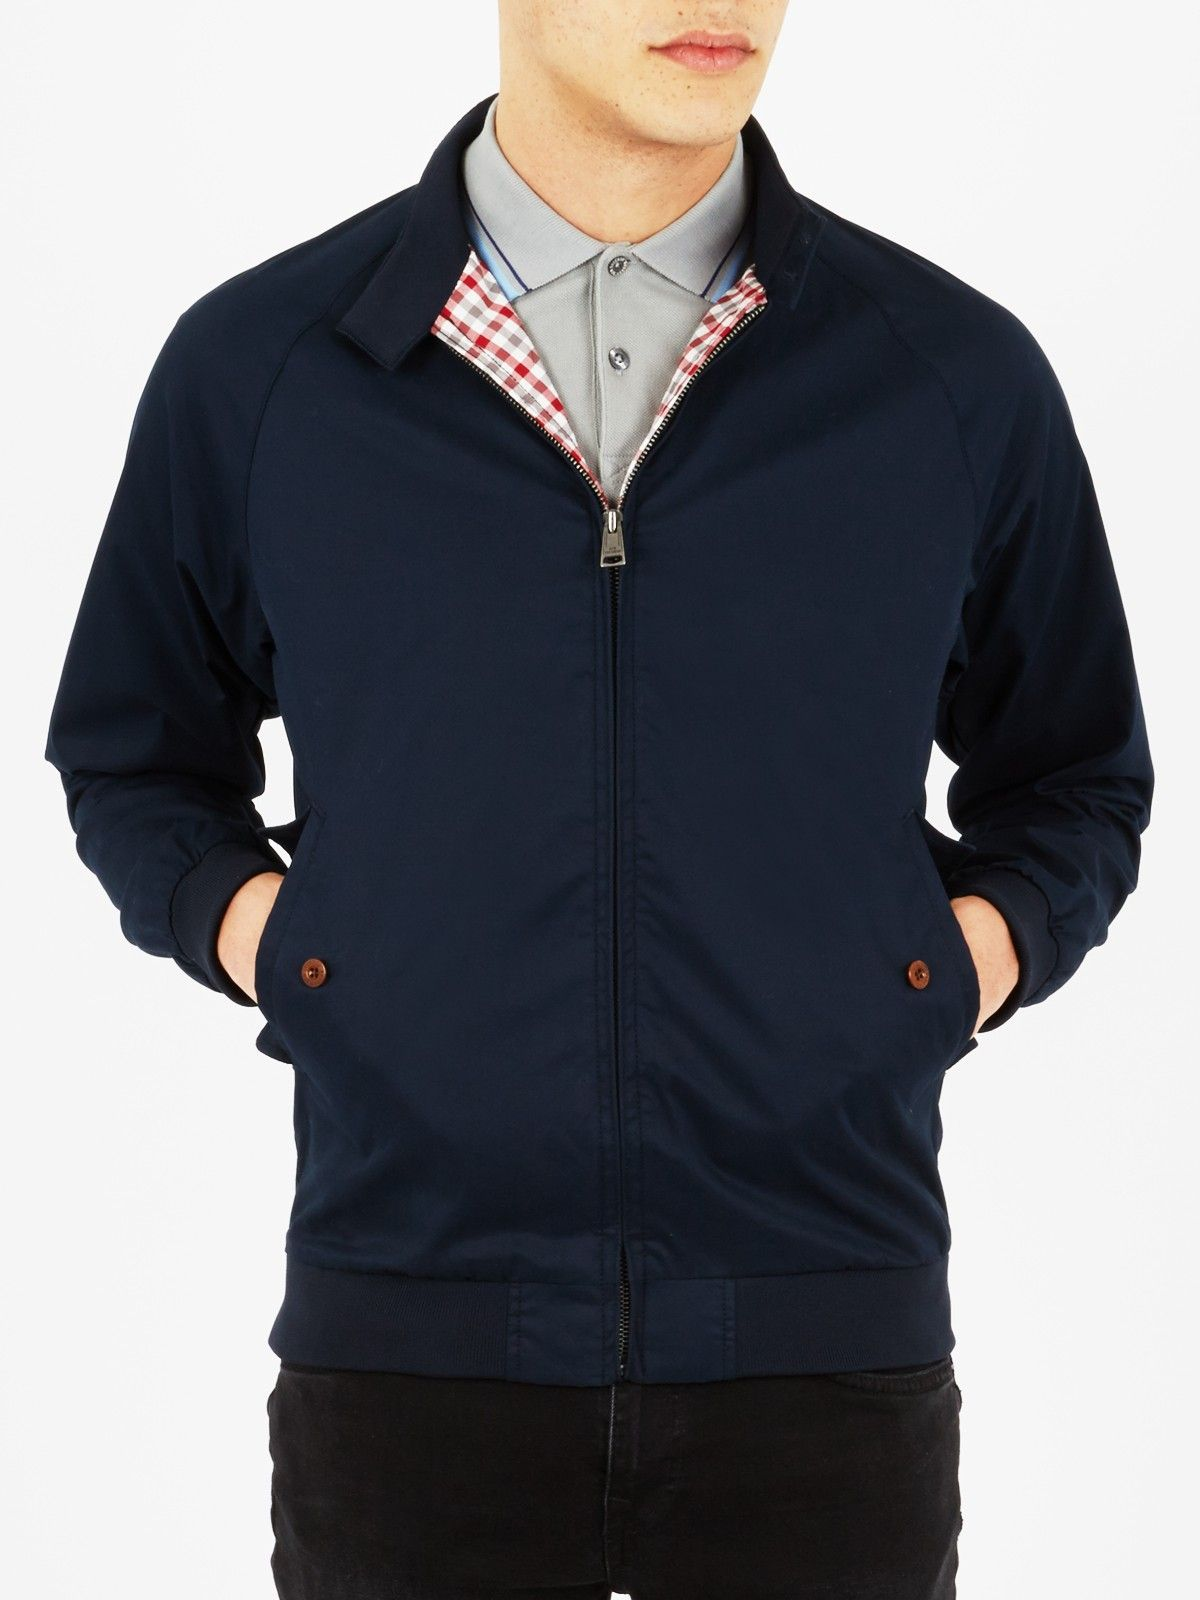 harrington jacket navy blazer ben sherman men 39 s clothing pinterest harrington jacket. Black Bedroom Furniture Sets. Home Design Ideas